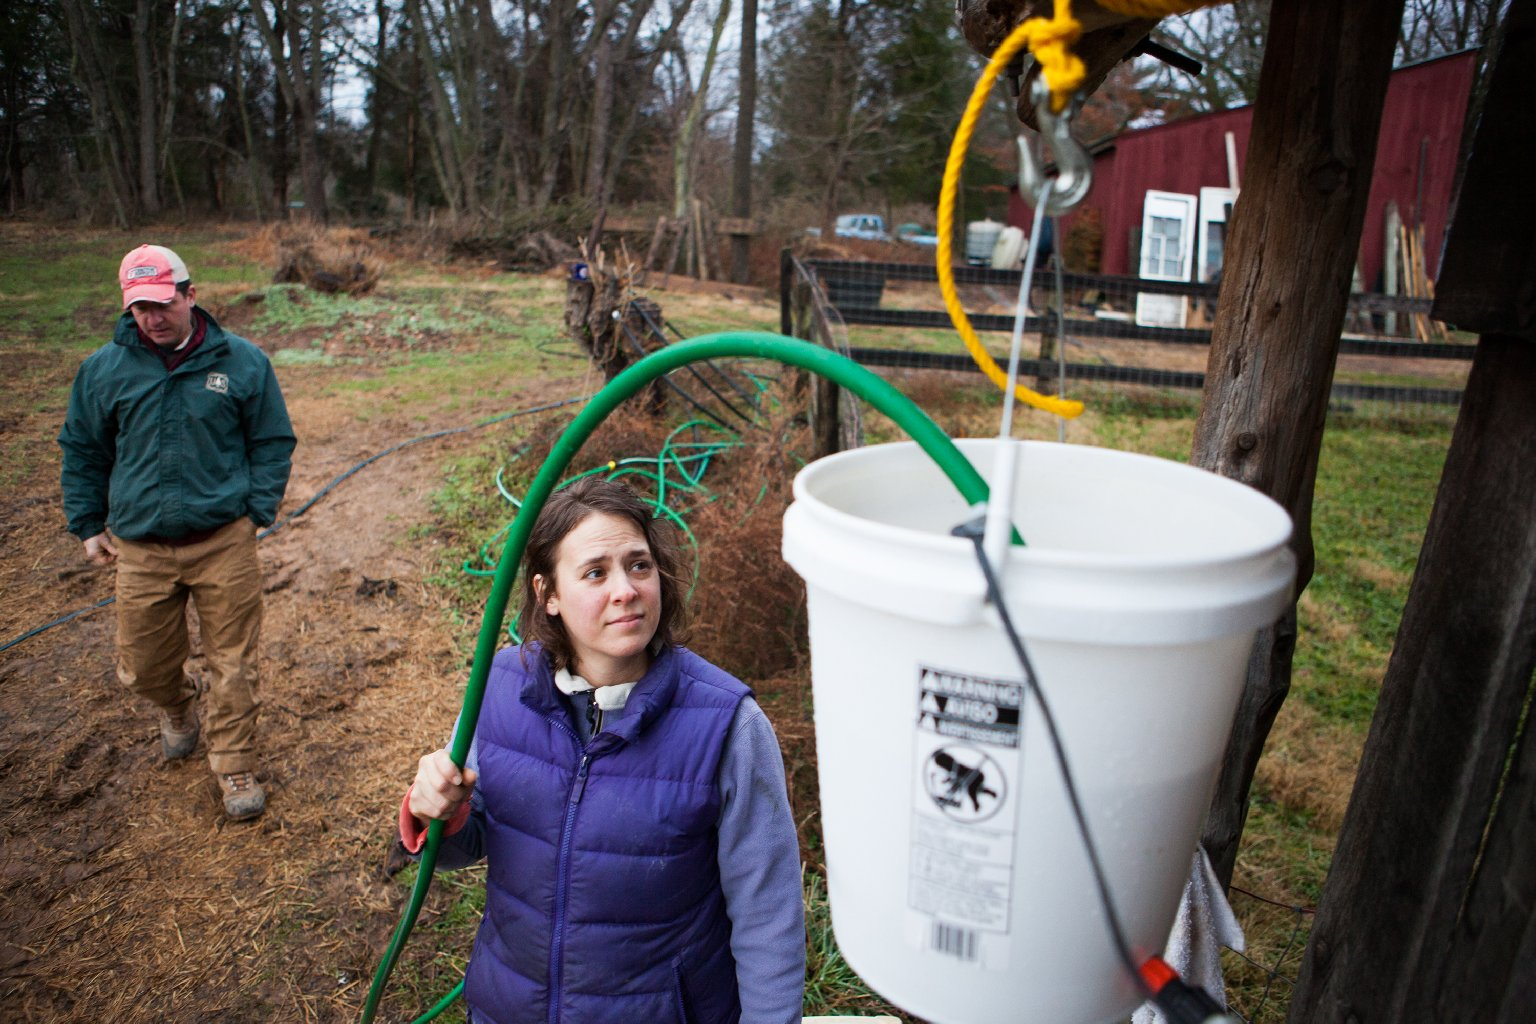 Sara Guerre fills the chicken coop's water feeder. The Guerres installed an aquarium heater to prevent freezing throughout the winter months. Photo: Zac Visco for NPR